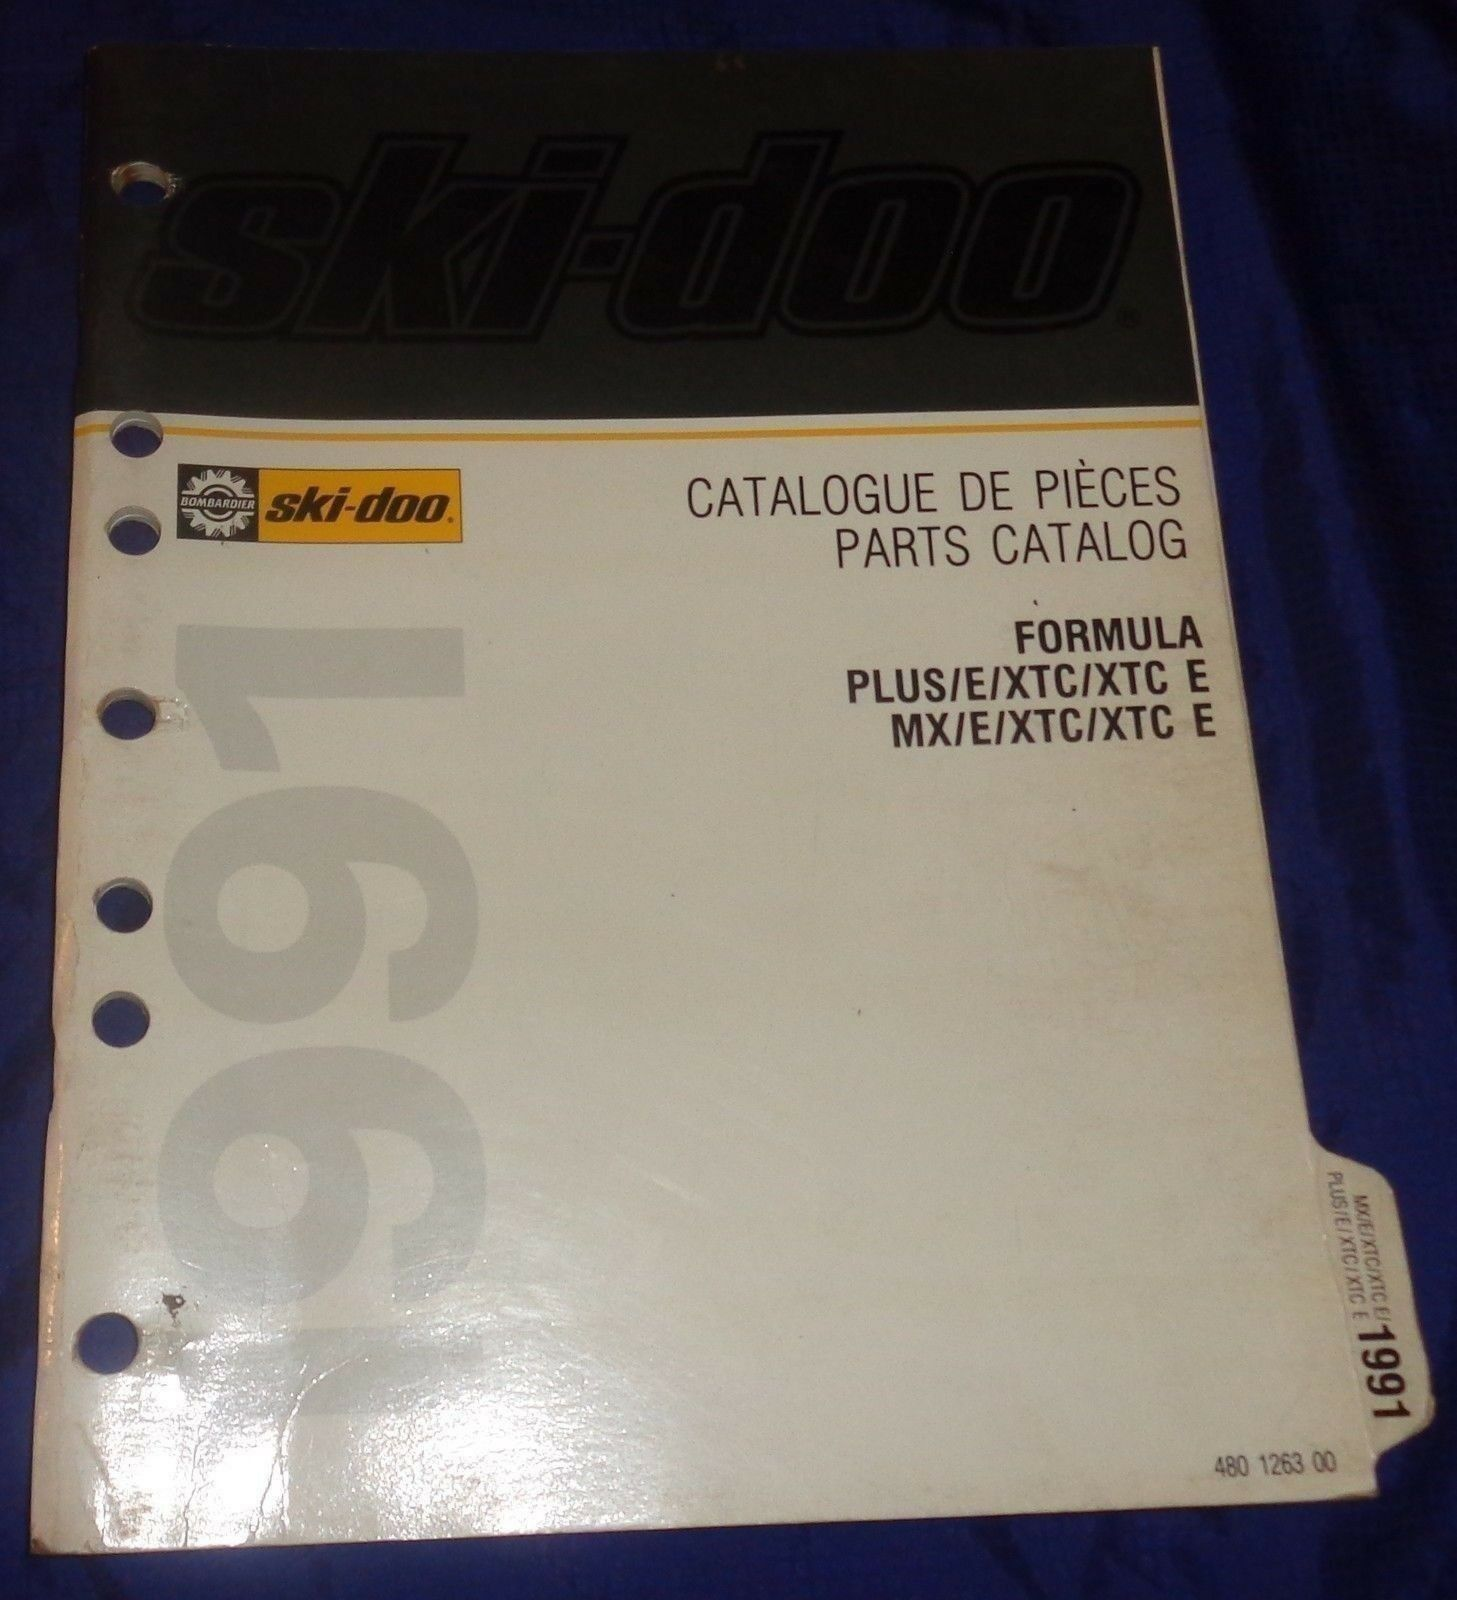 BS676 1991 Ski-Doo Formula PLUS MX E XTC XTC E Parts Catalog 480 1263 00 Manual